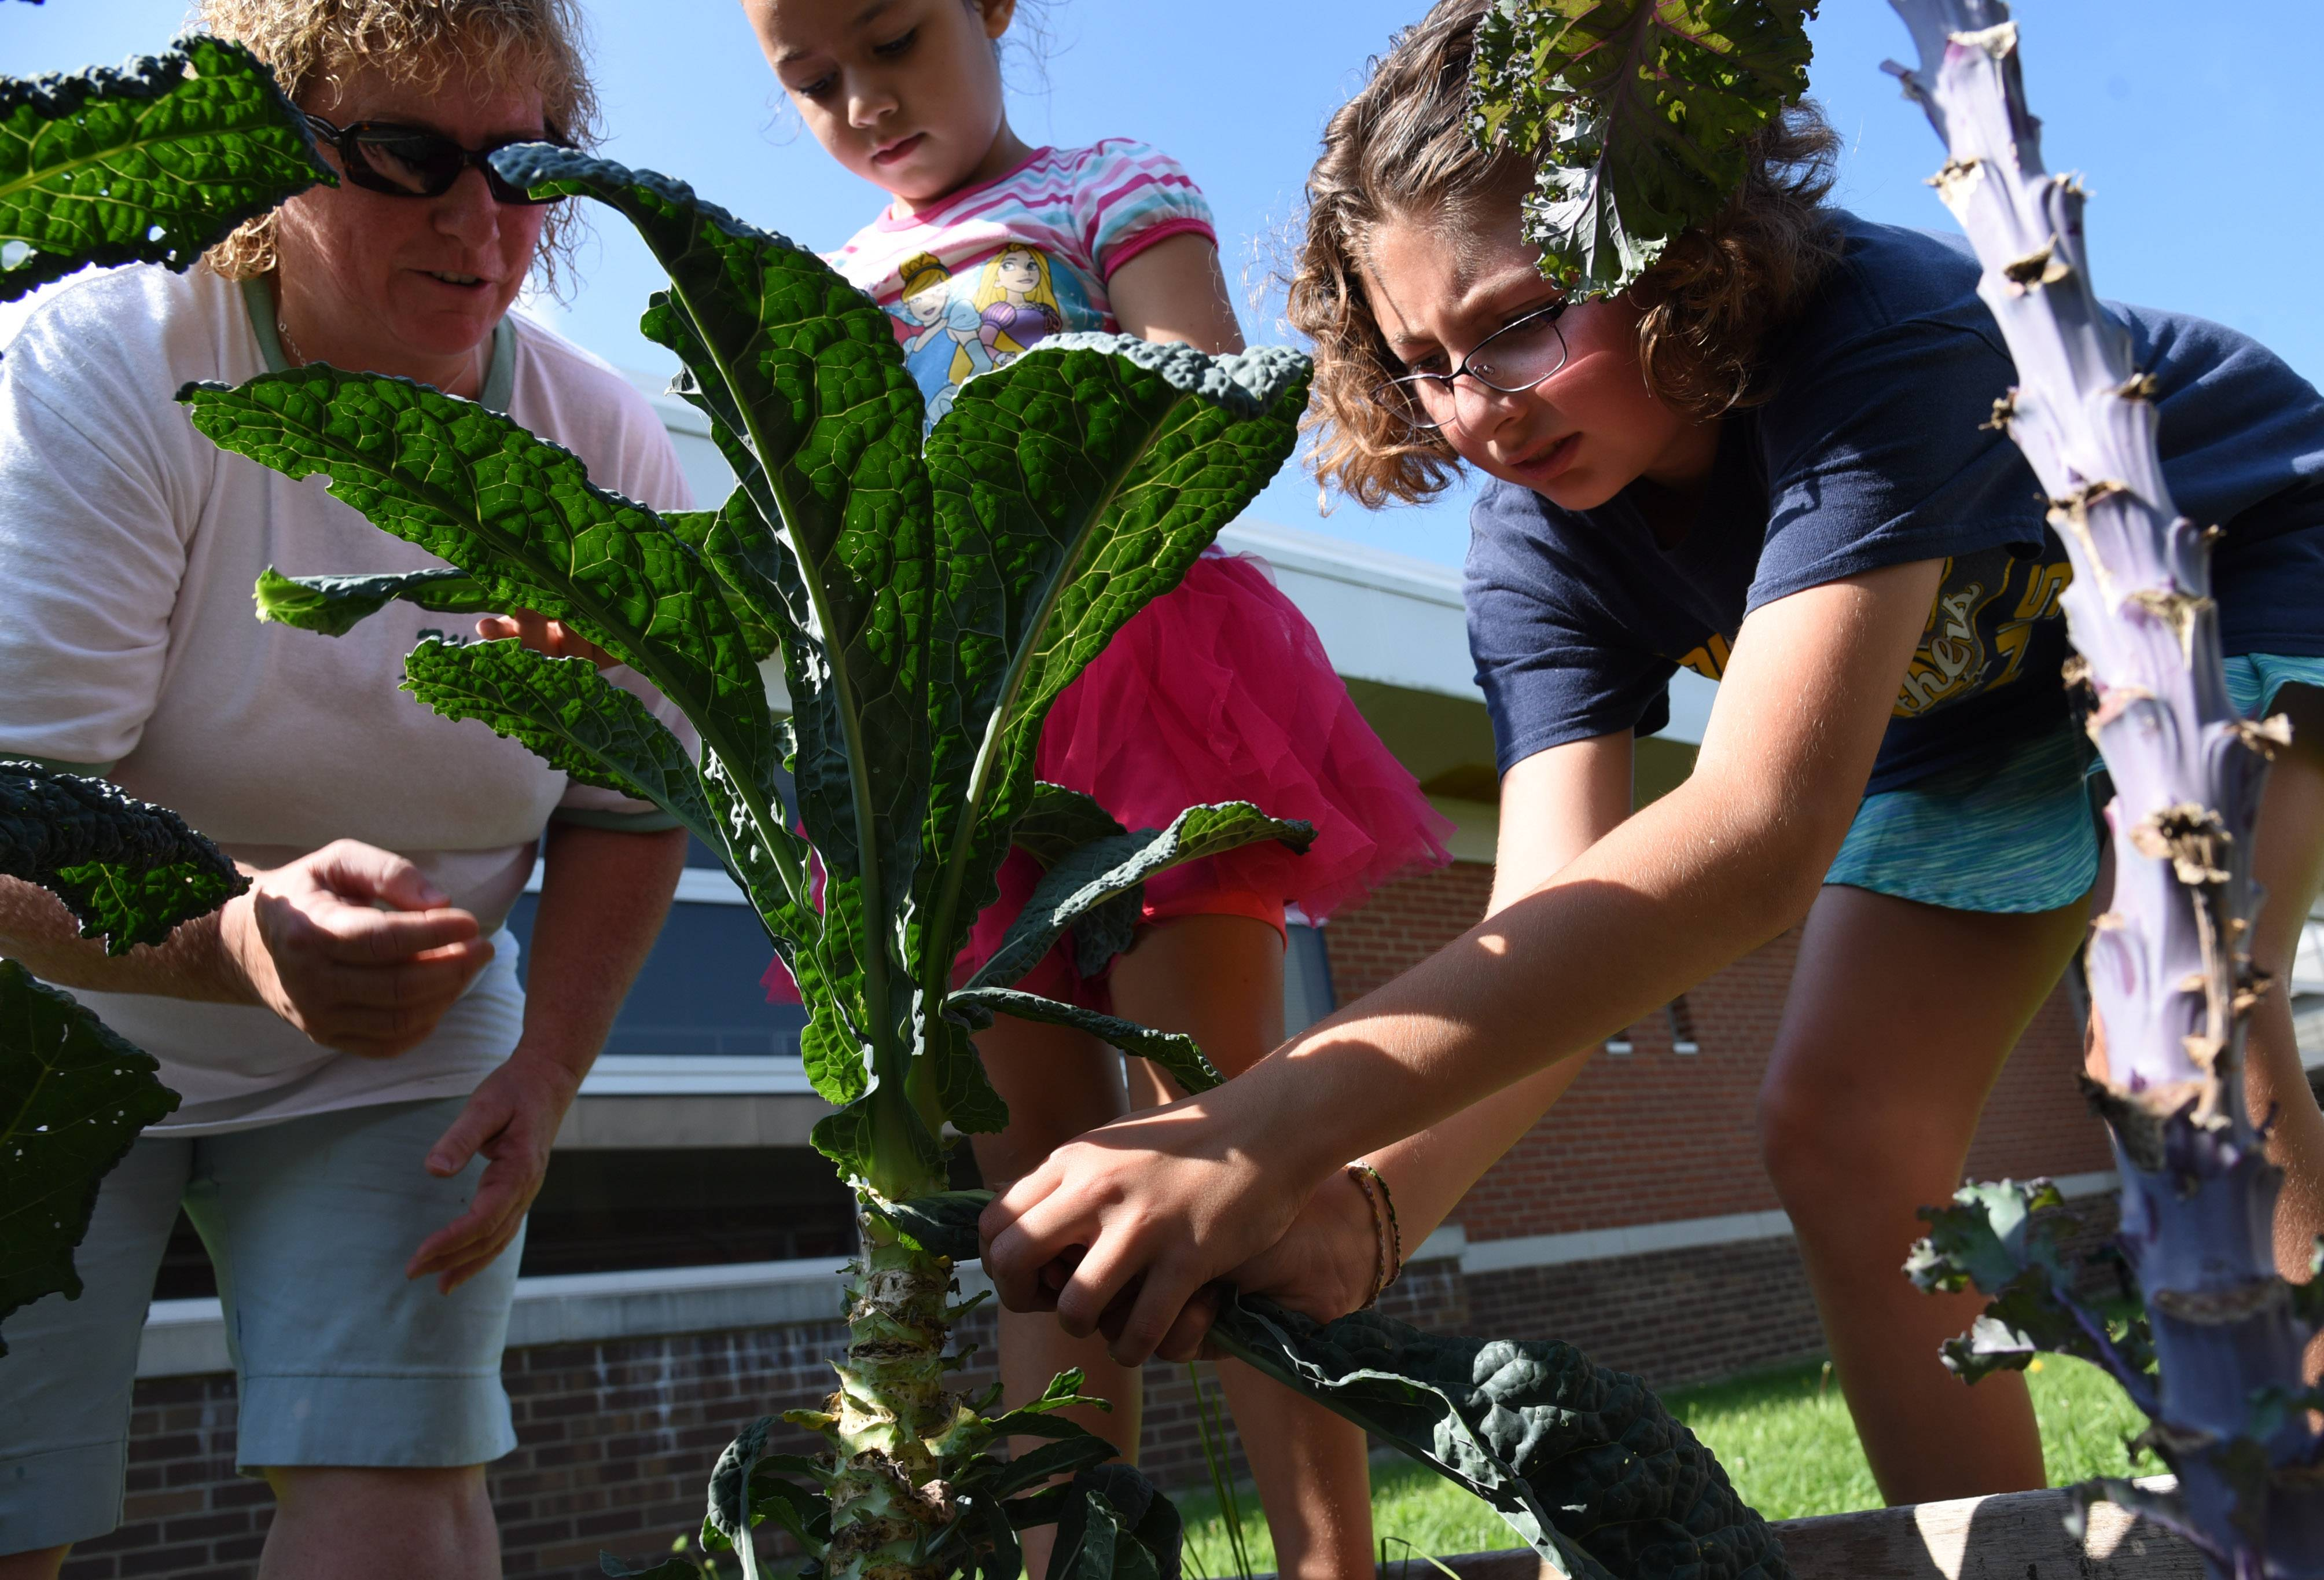 Lori Northup, Fremont Elementary School's healthy minds teacher, left, helps students Madisun Flores and Tessa Davis, right, pick kale Tuesday at the school's gardens in Mundelein.